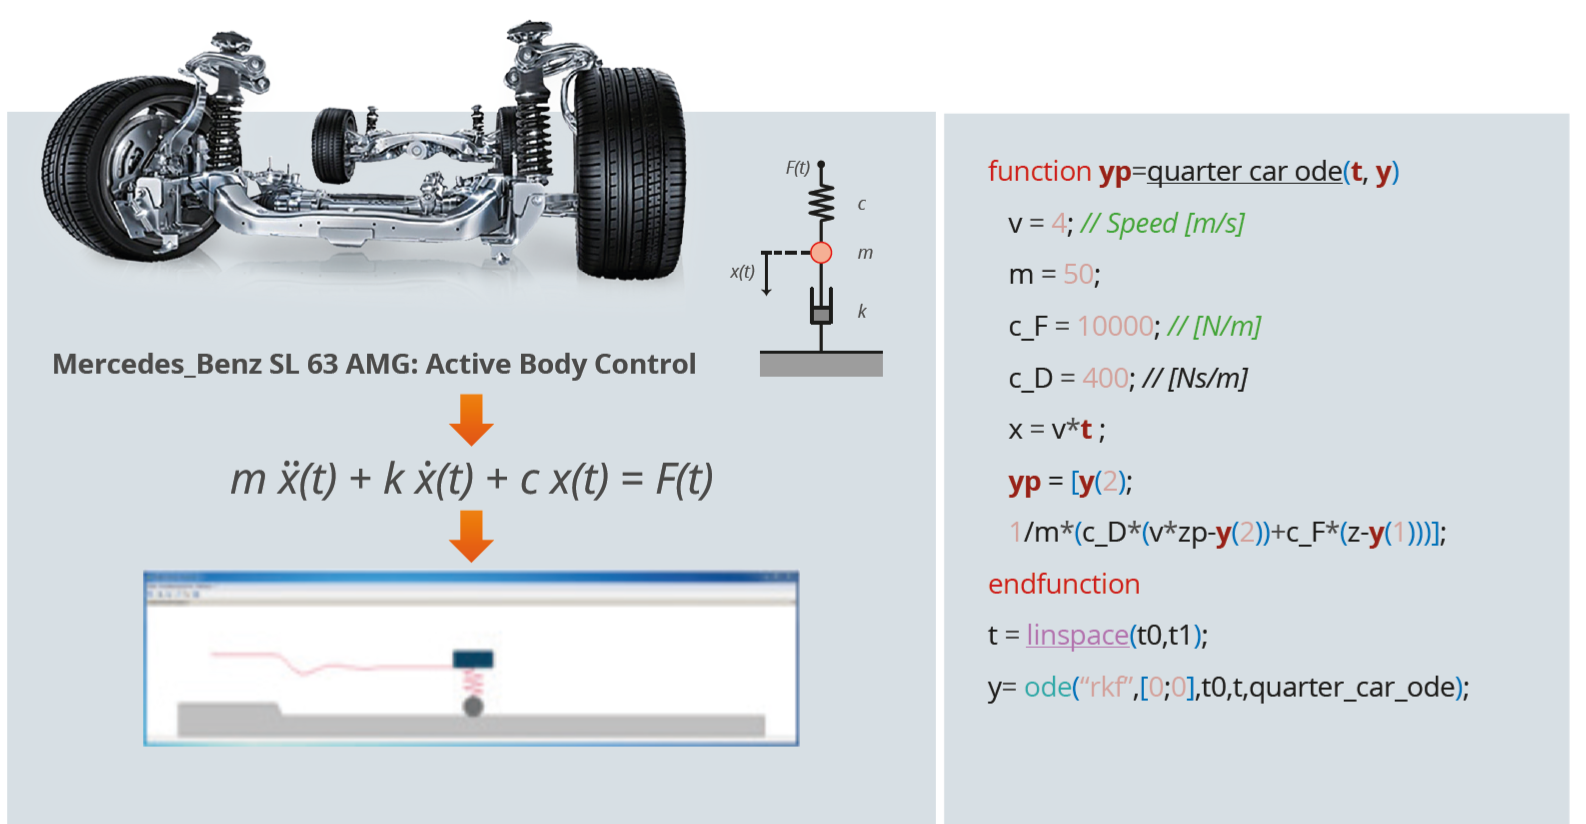 Car Chassis & Suspension for Vehicle Dynamics   www scilab org